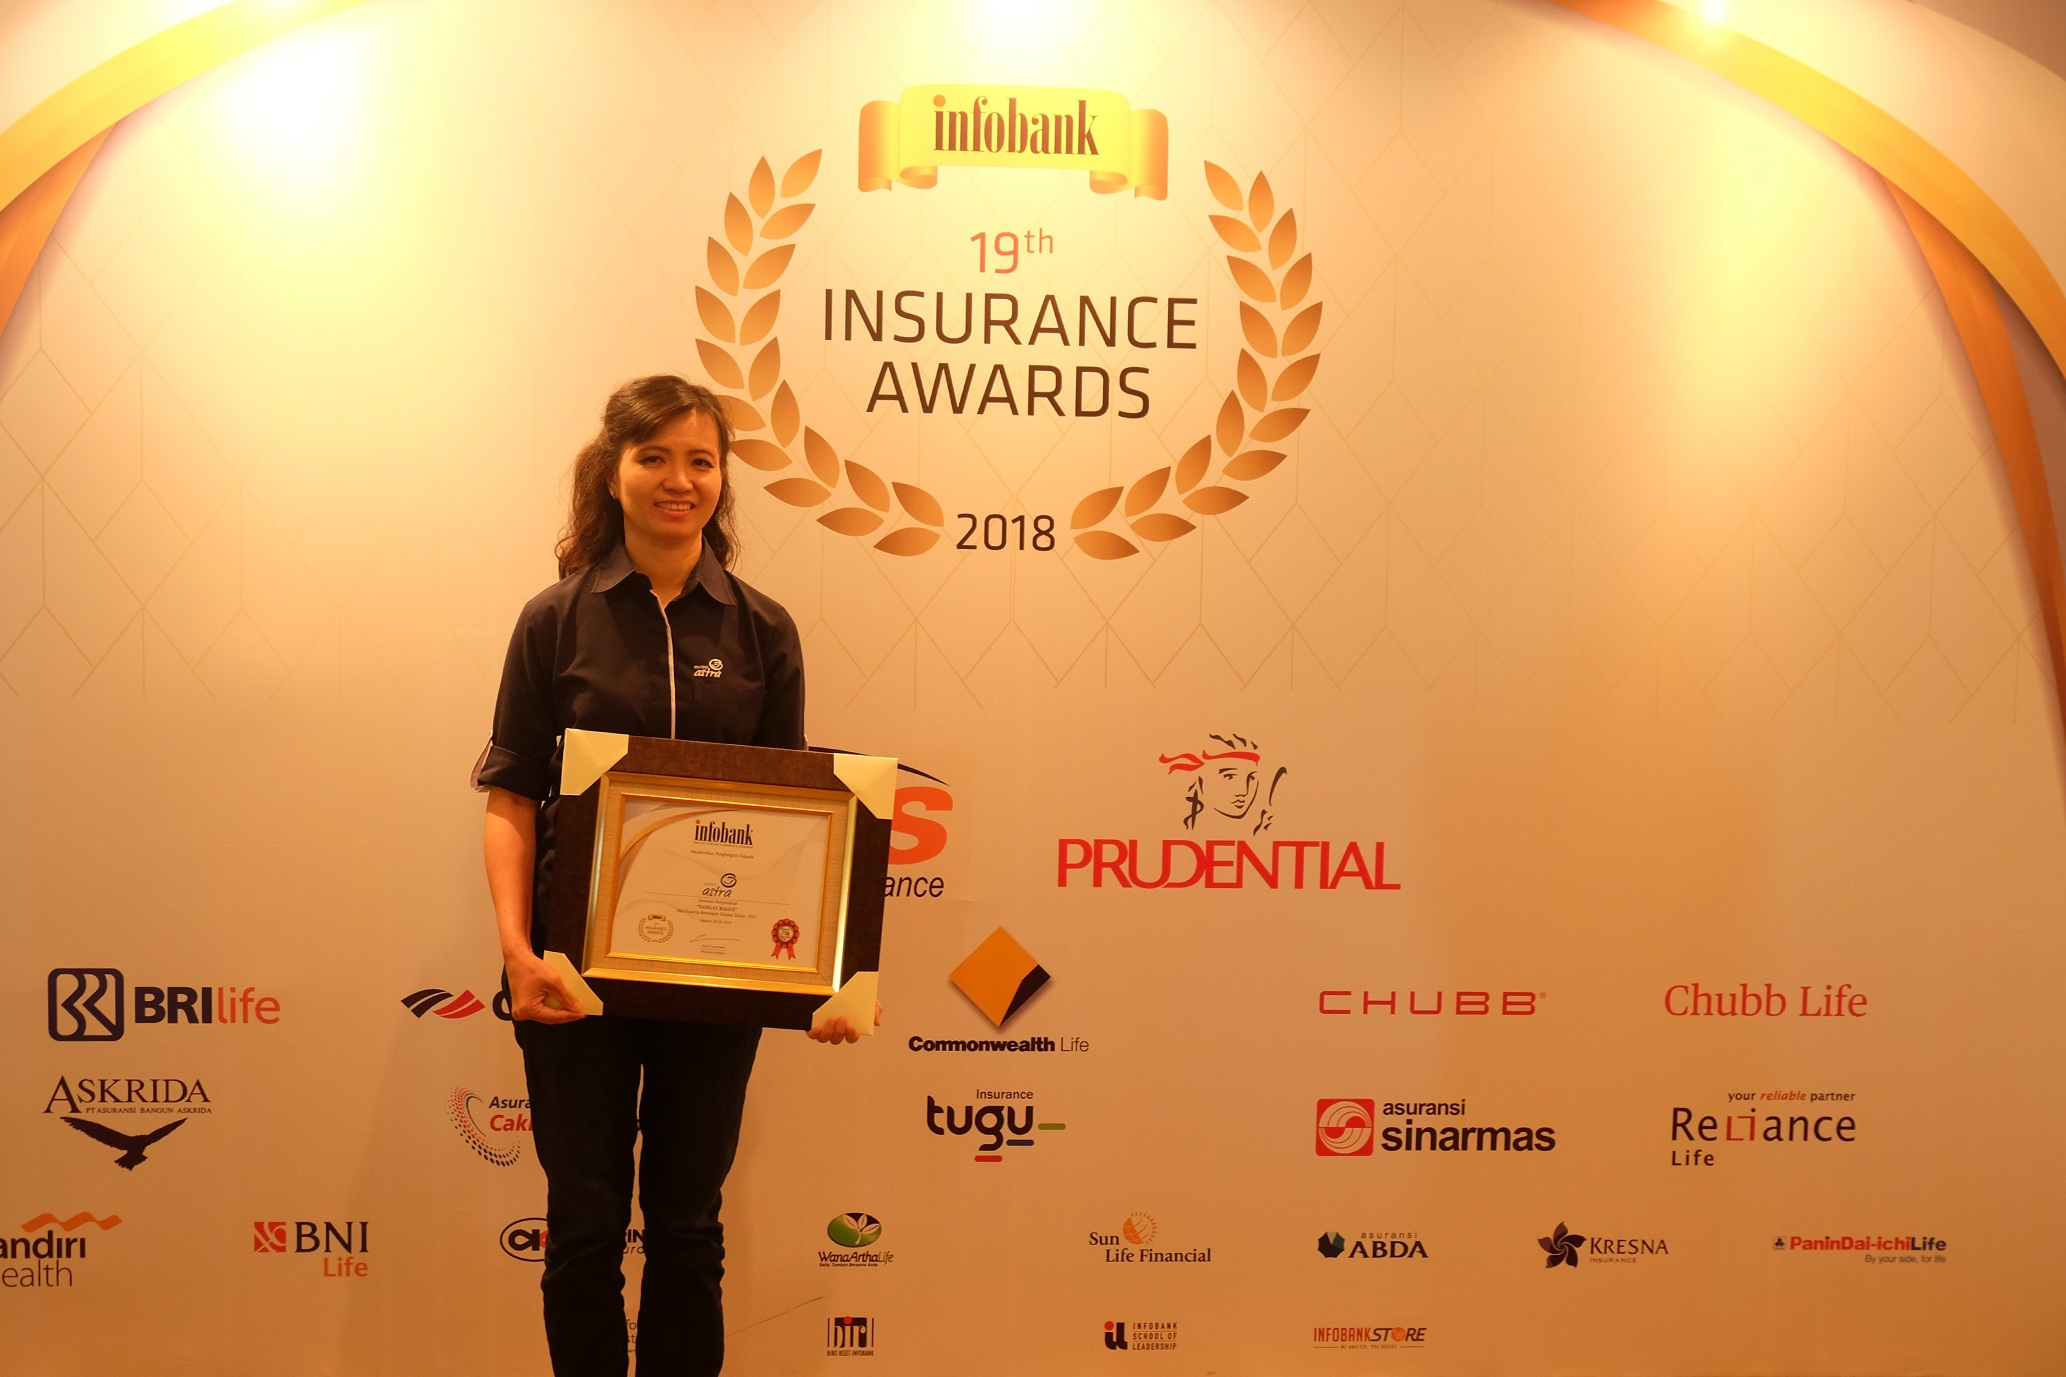 SVP Accounting and Finance Asuransi Astra, Lia Prilianty Singgih usai menerima penghargaan Infobank Insurance Awards 2018.